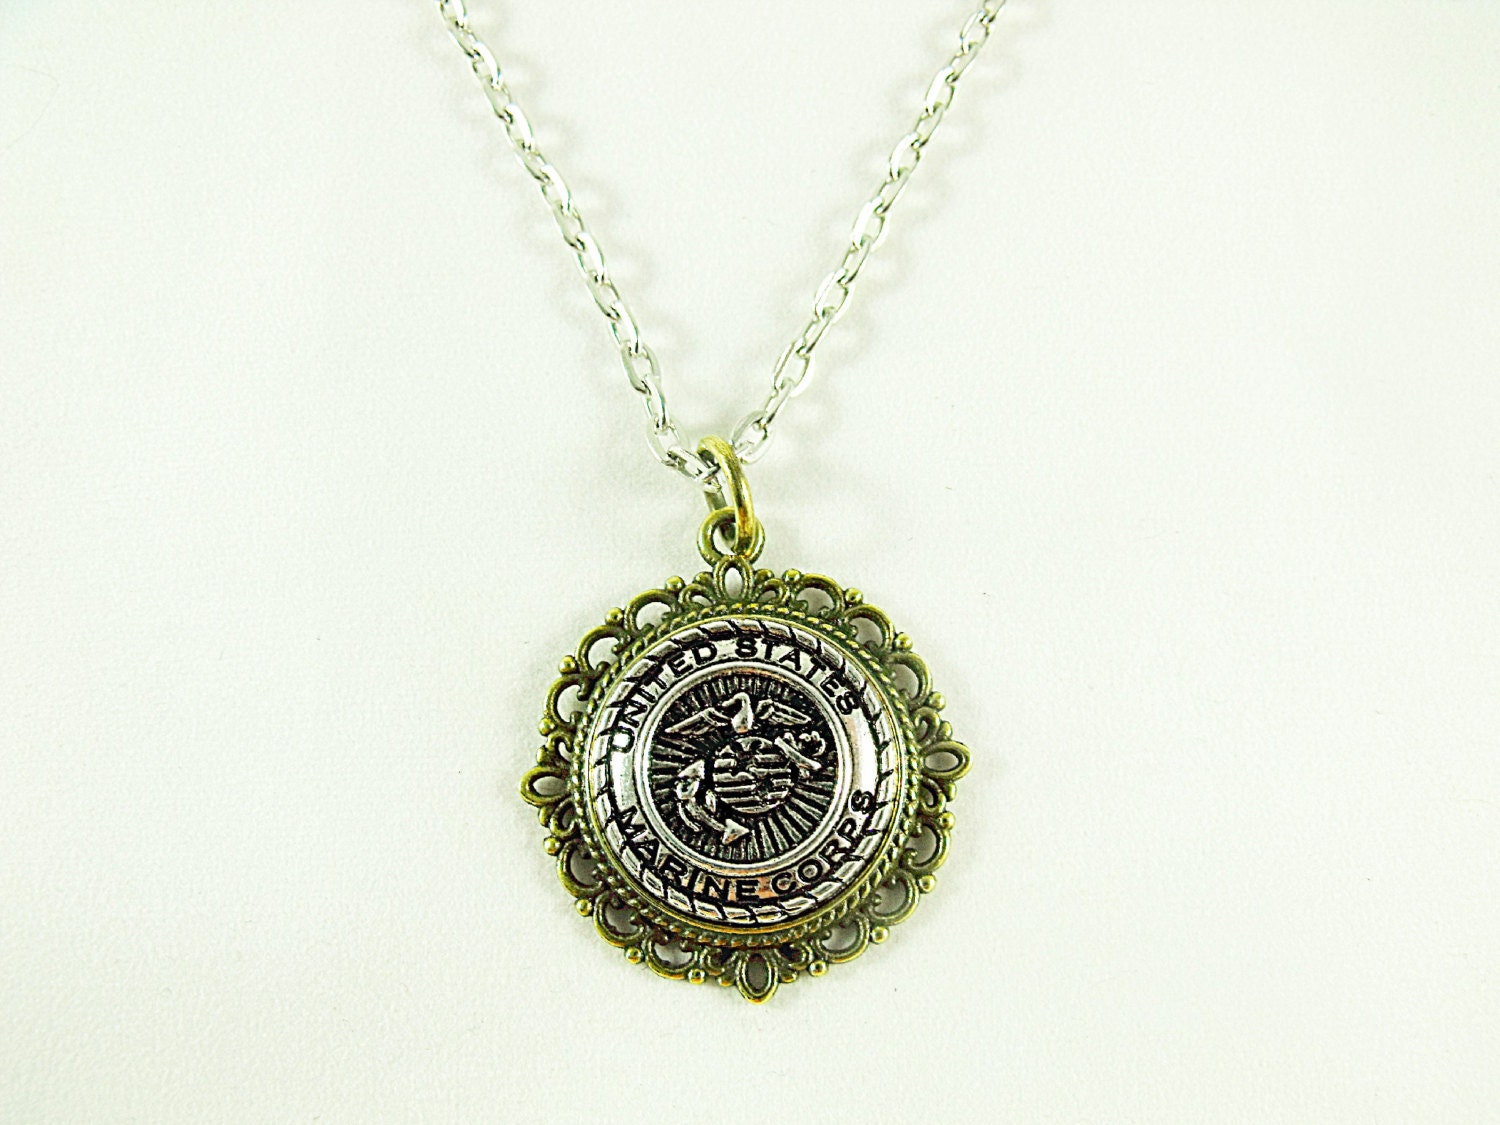 marine corps jewelry pendant necklace marine corps s or s 756